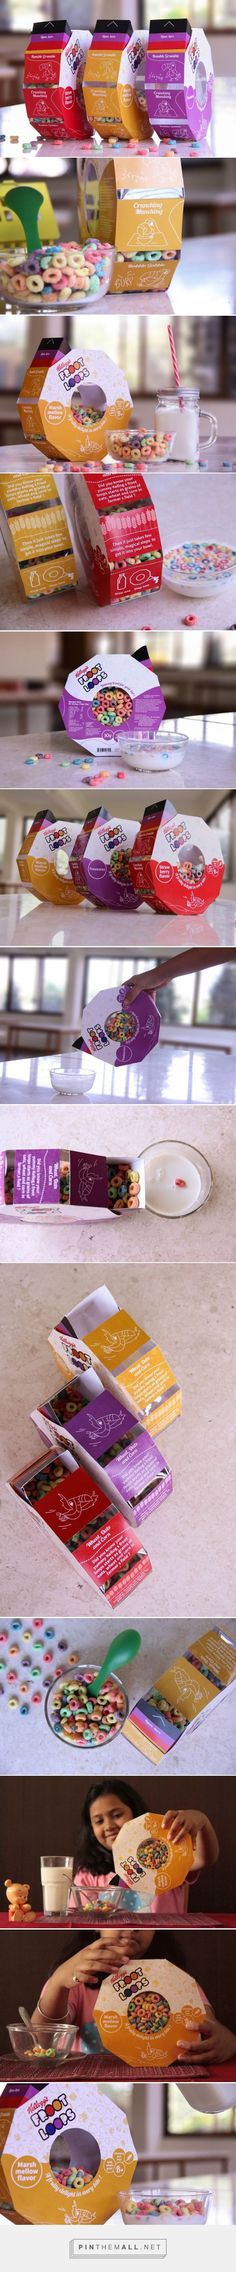 Frootloops ‪‎cereal‬ ‪‎packaging‬ designed by ‪student‬ Prachi Deshingkar, Shikha Kanakia